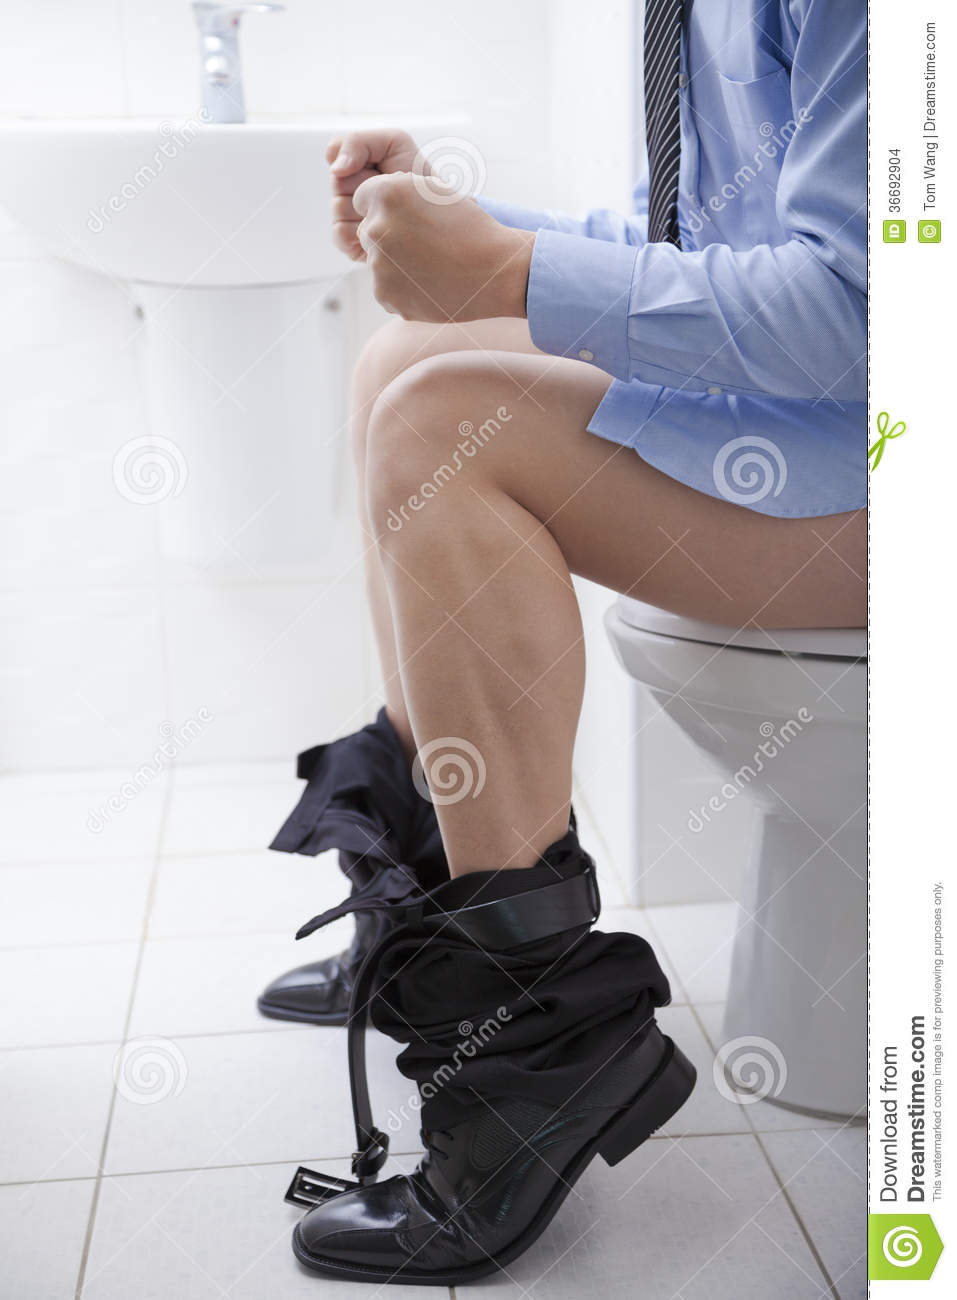 Digestive Problems Like Constipation Or Diarrhea Stock Photo Image 36692904